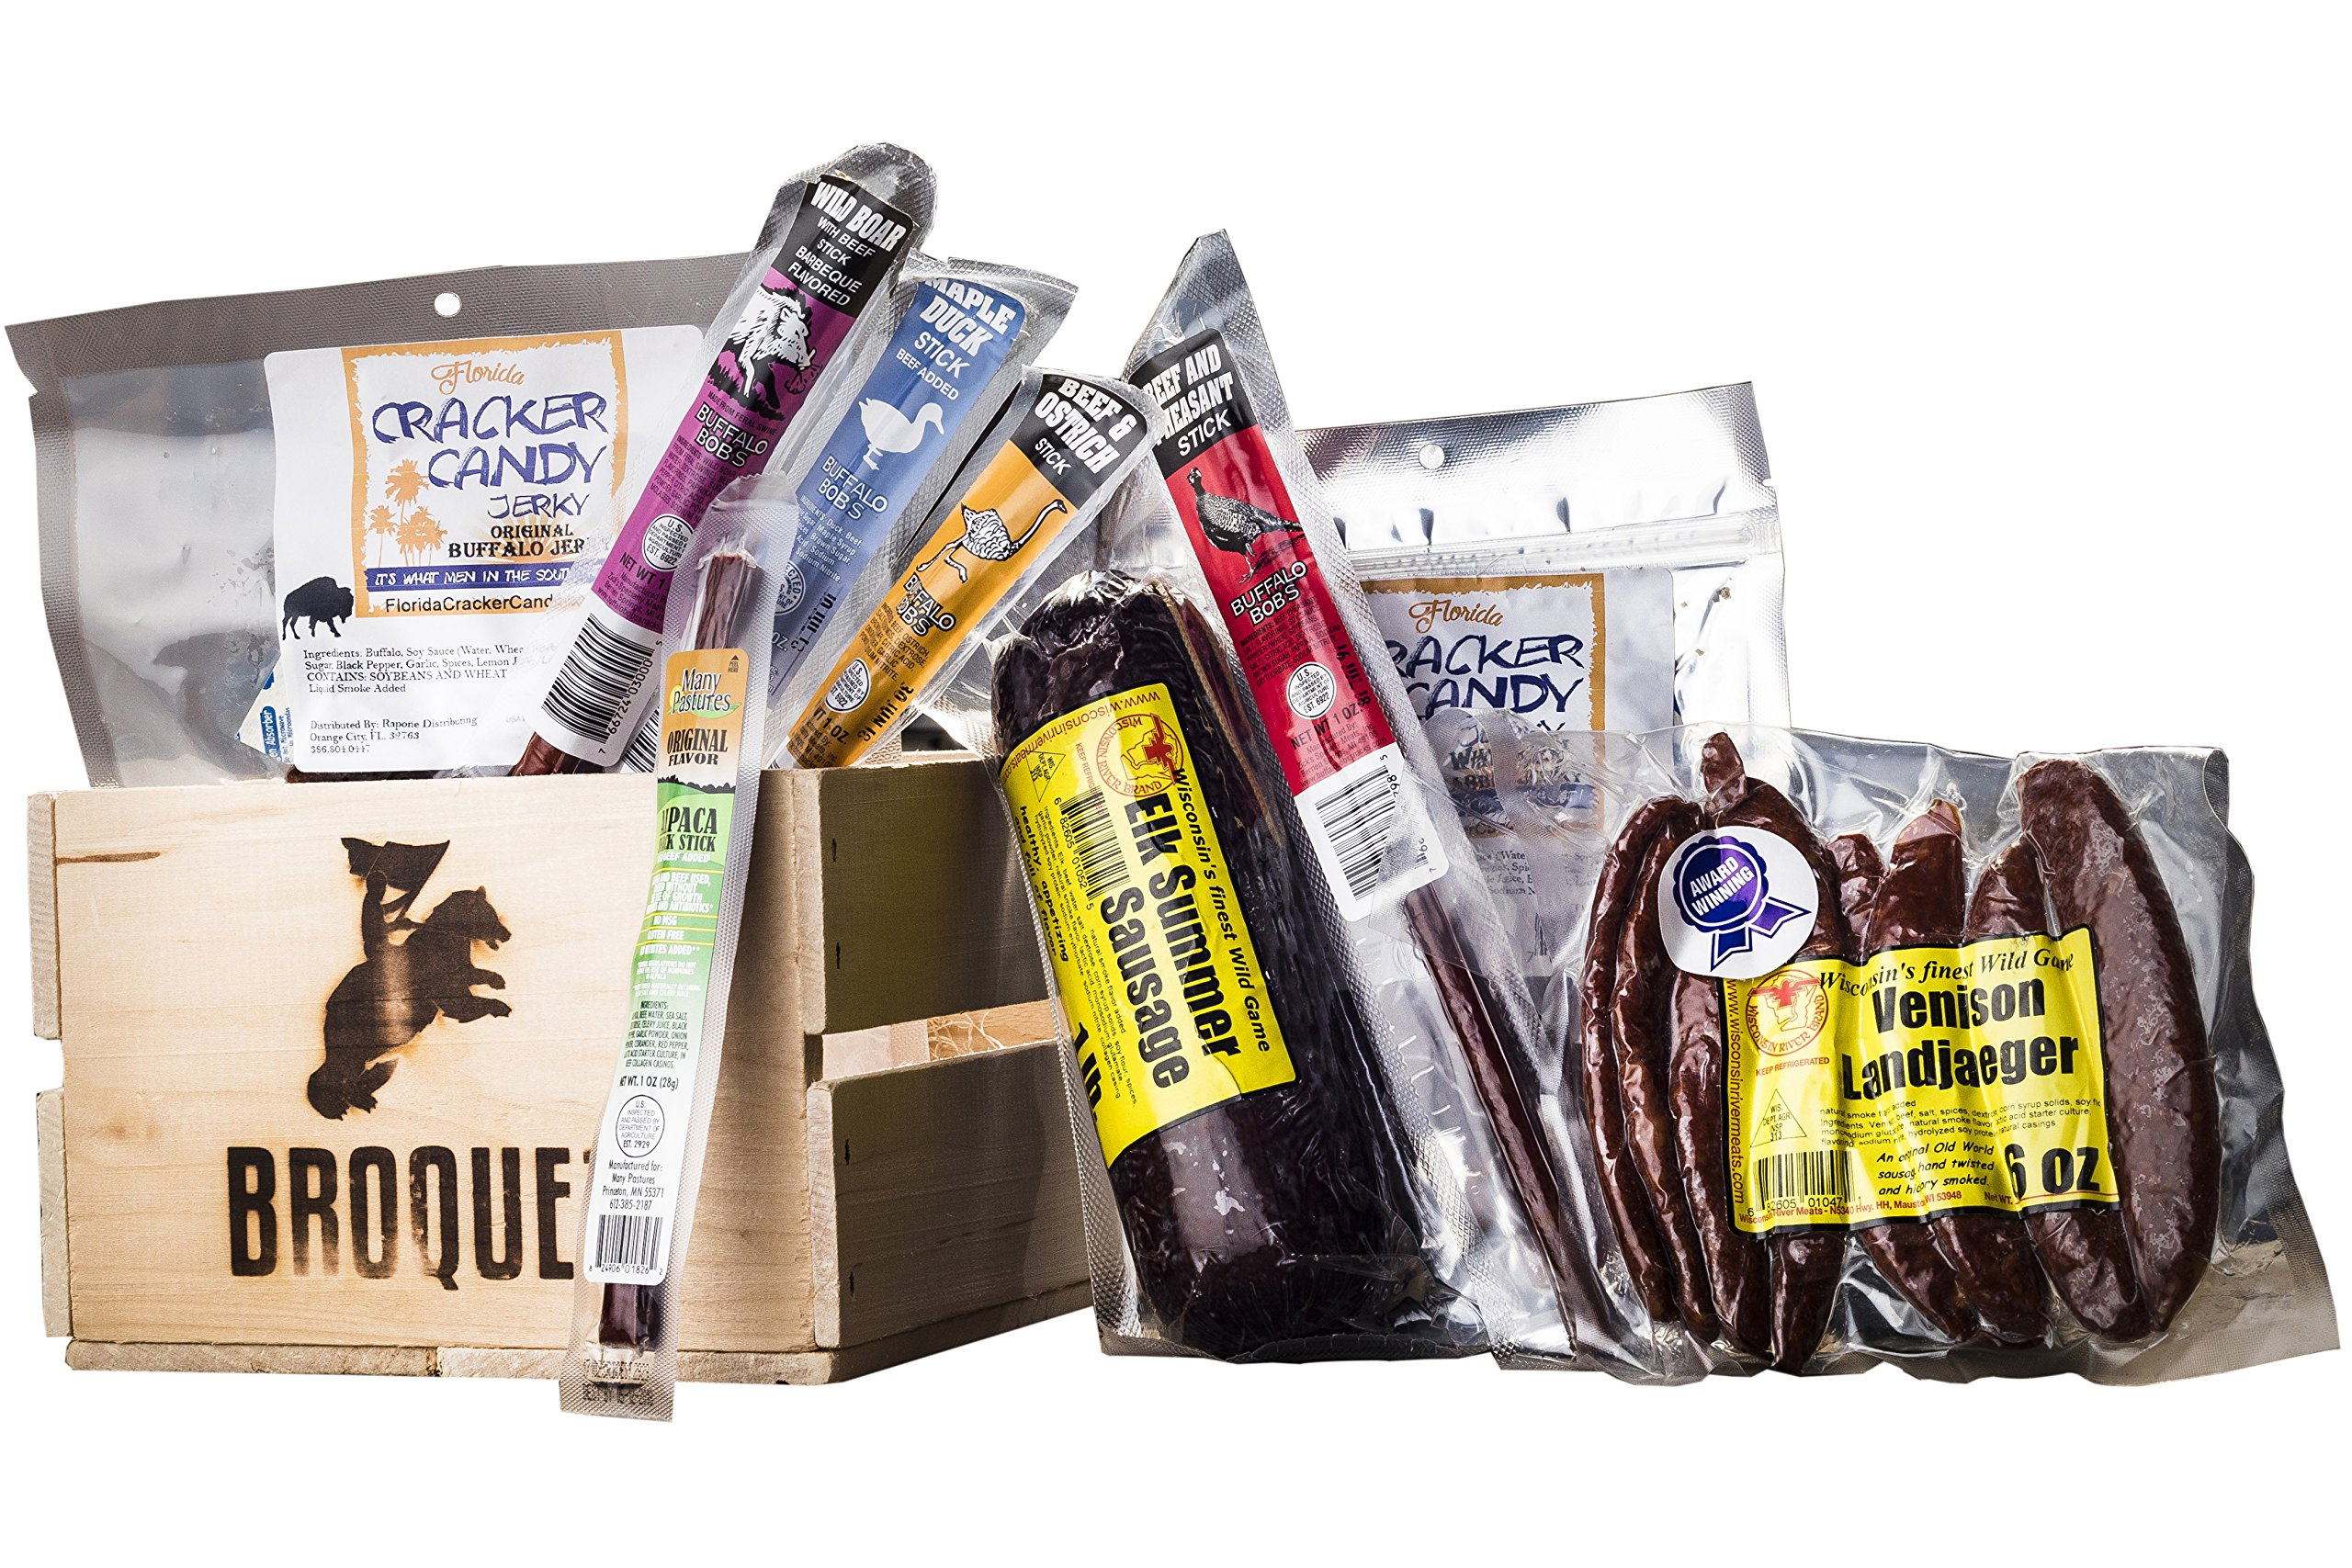 Exotic Meat Crate (Exotic Jerky Gift) - Jerky & Meat Sticks Sampler - Comes in a Wooden Crate - Great Gift for Men - Exotic Meat Jerky Gift - Birthday